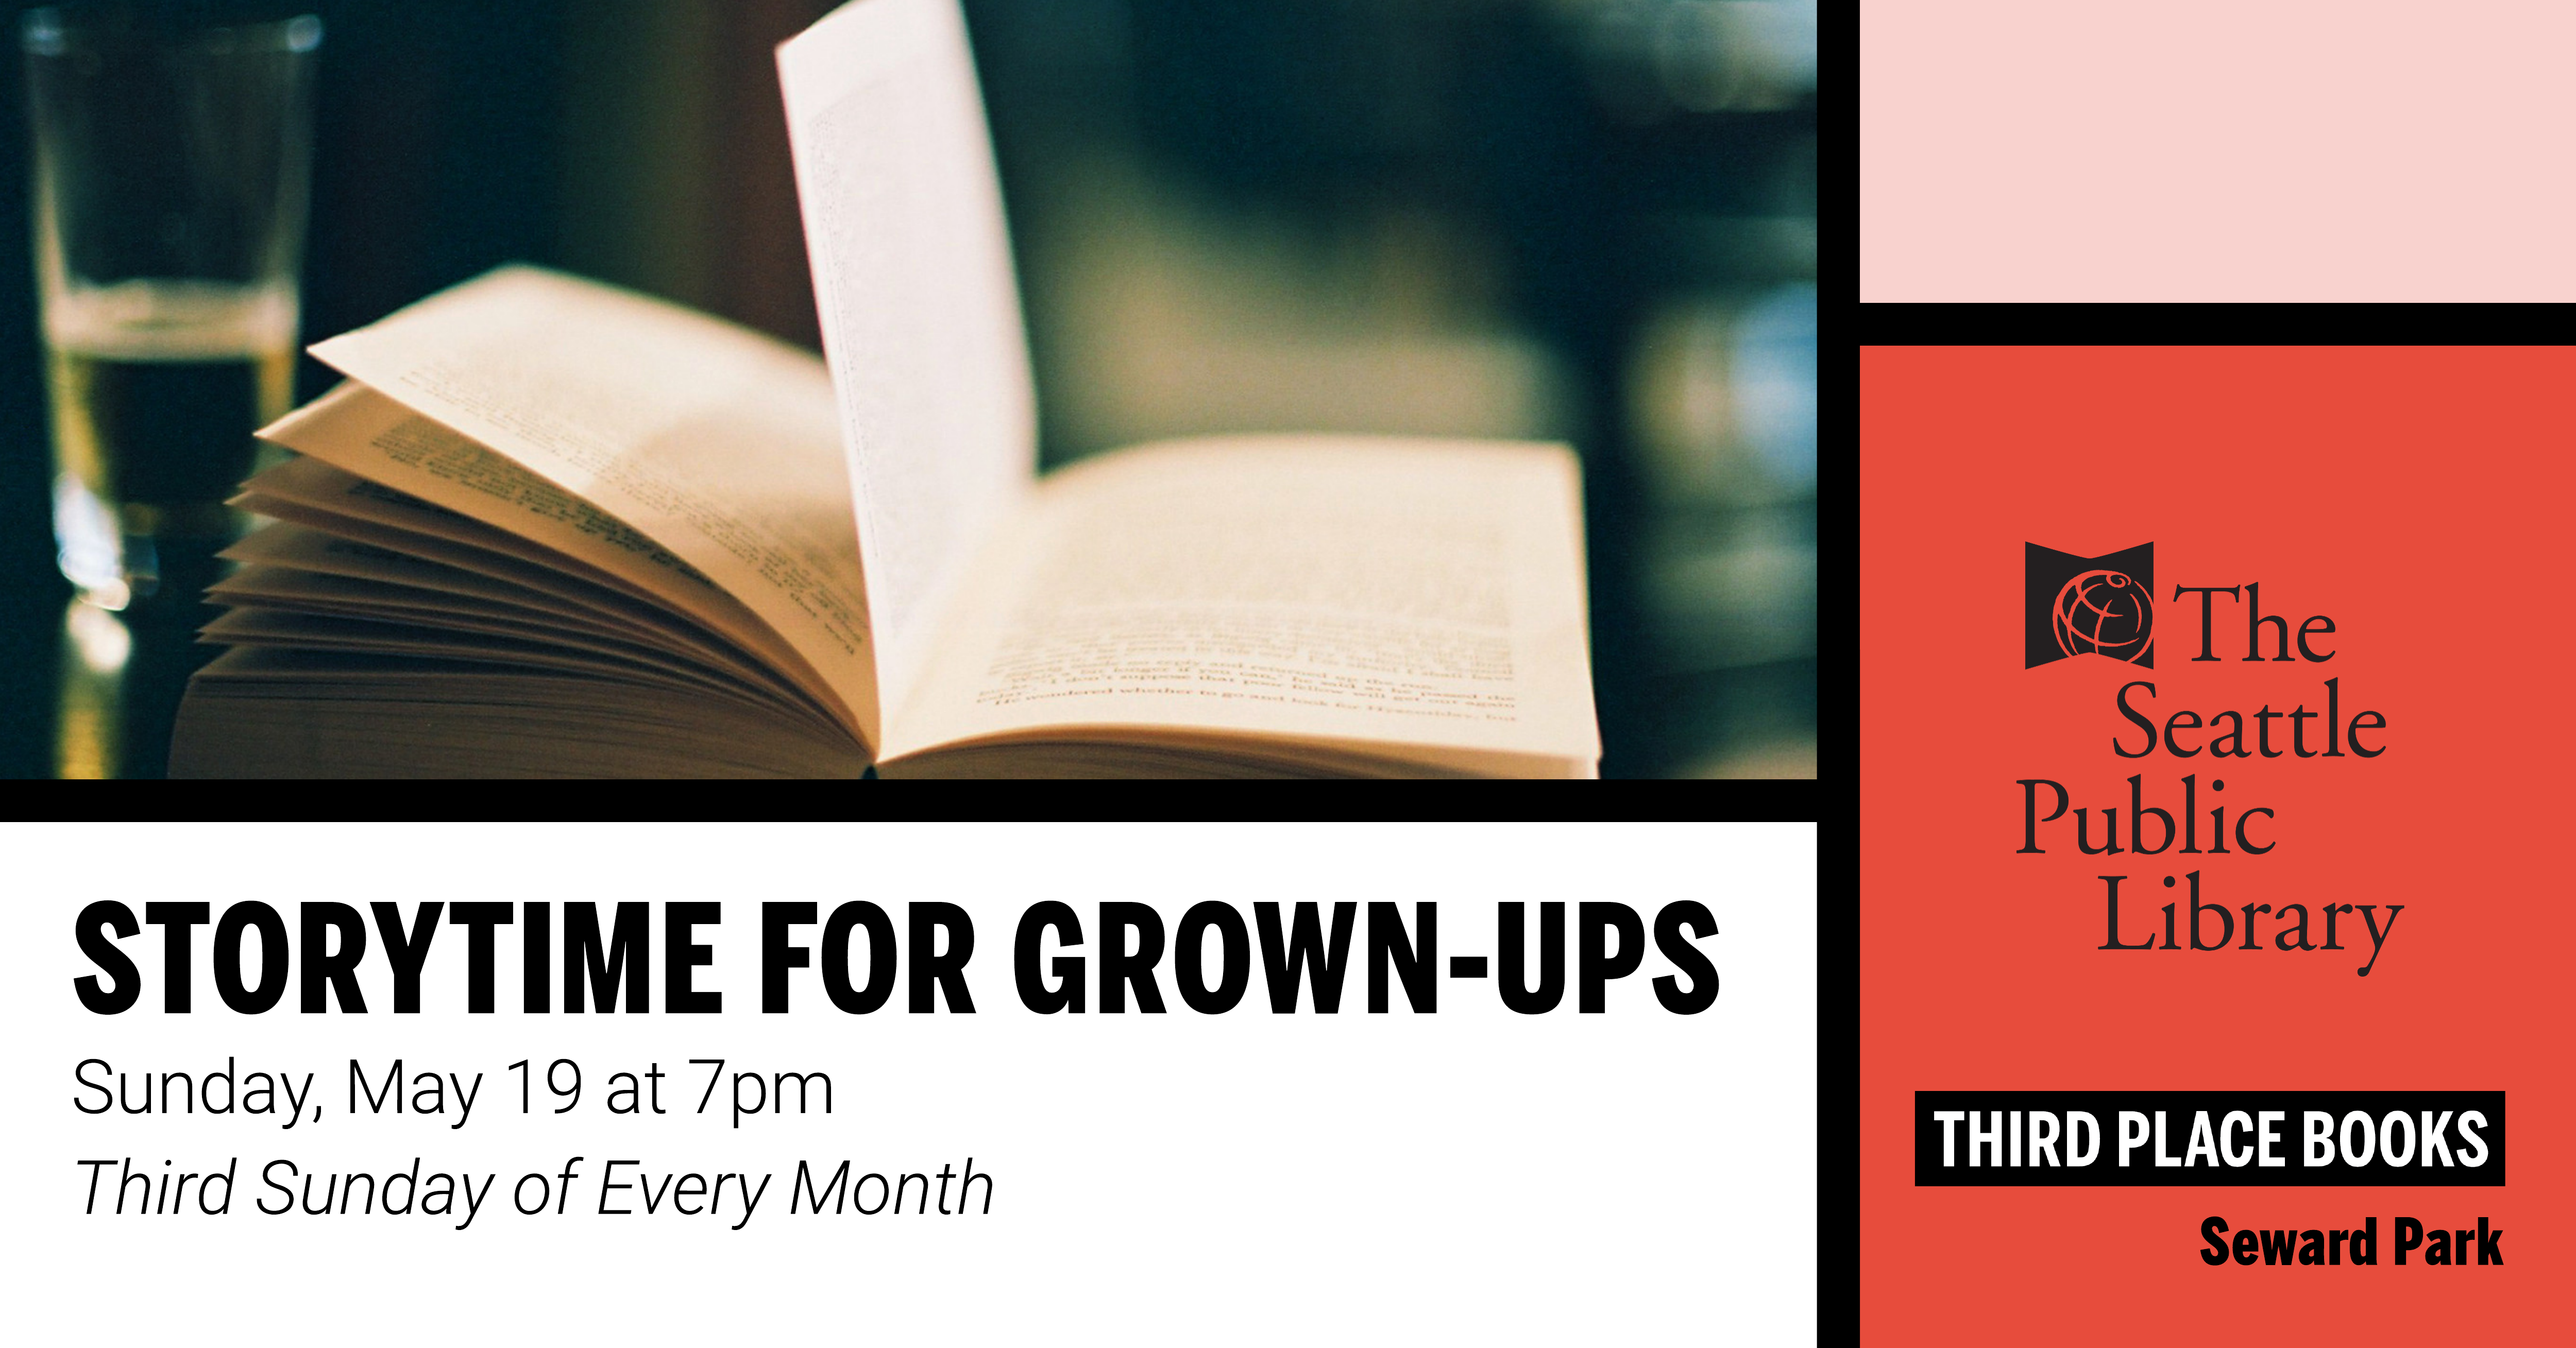 Join us for Story Time for Grown Ups on Sunday, May 19 at 7pm